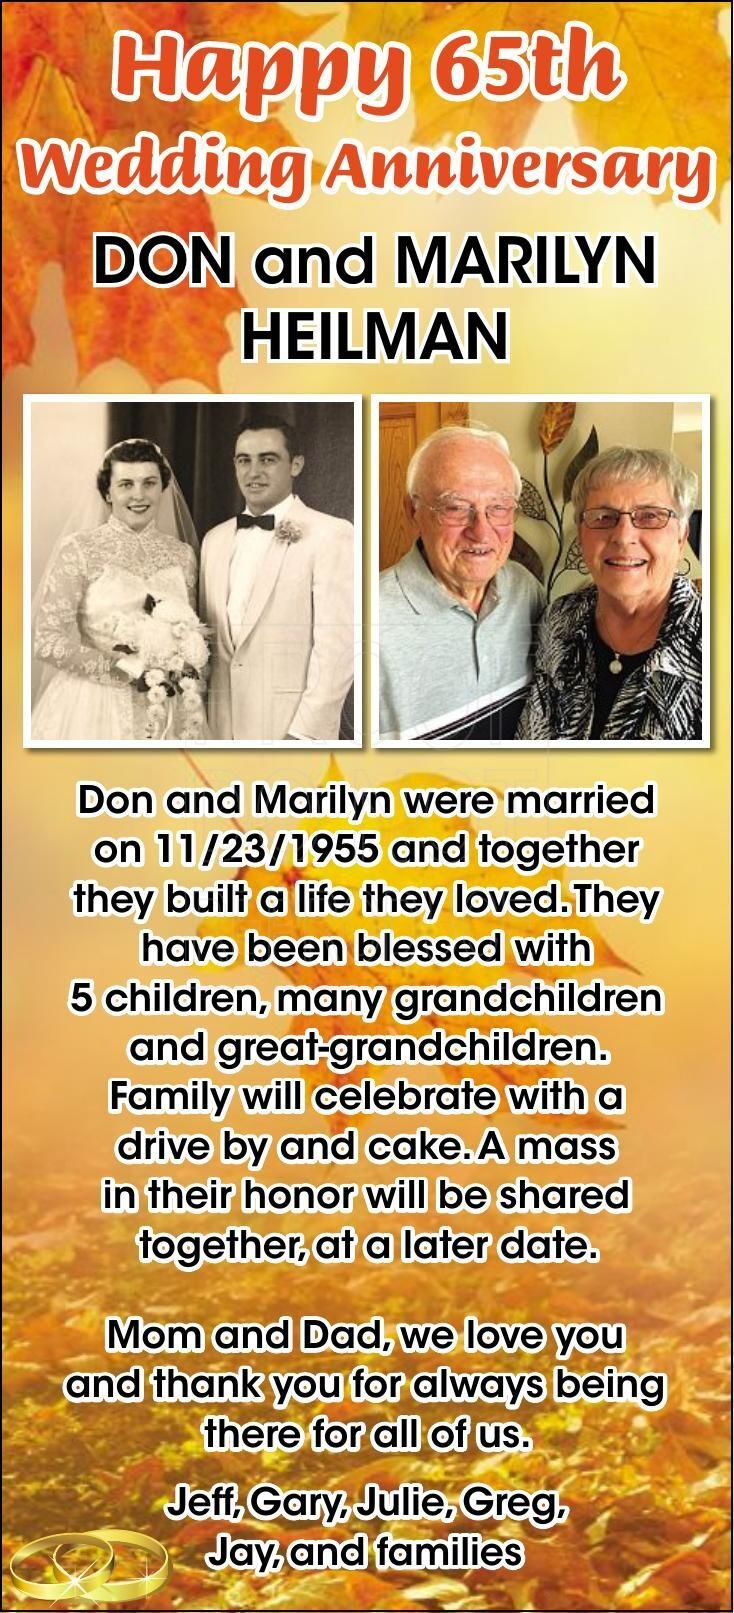 Don and Marilyn Heilman 65th Anniversary